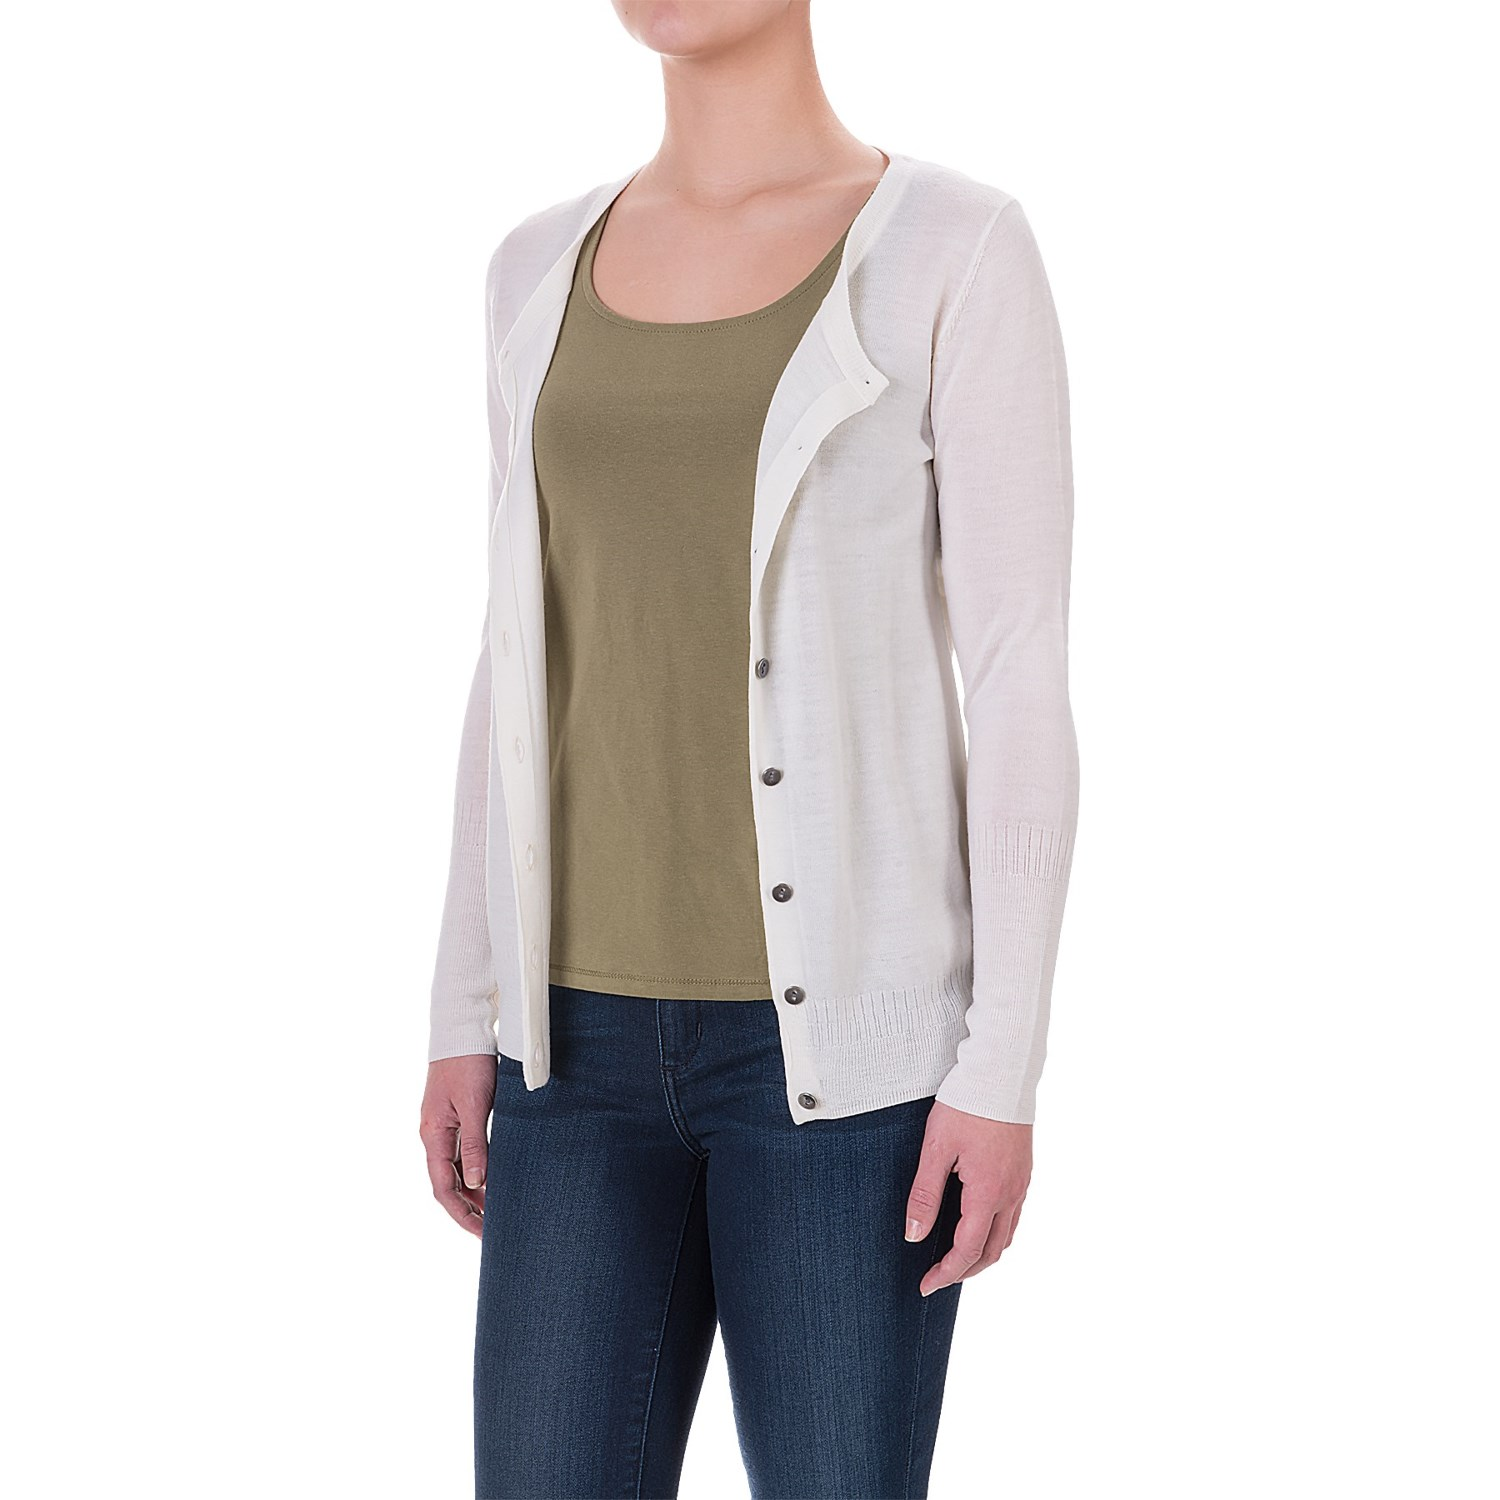 Ibex Harmony Cardigan Sweater (For Women) - Save 51%